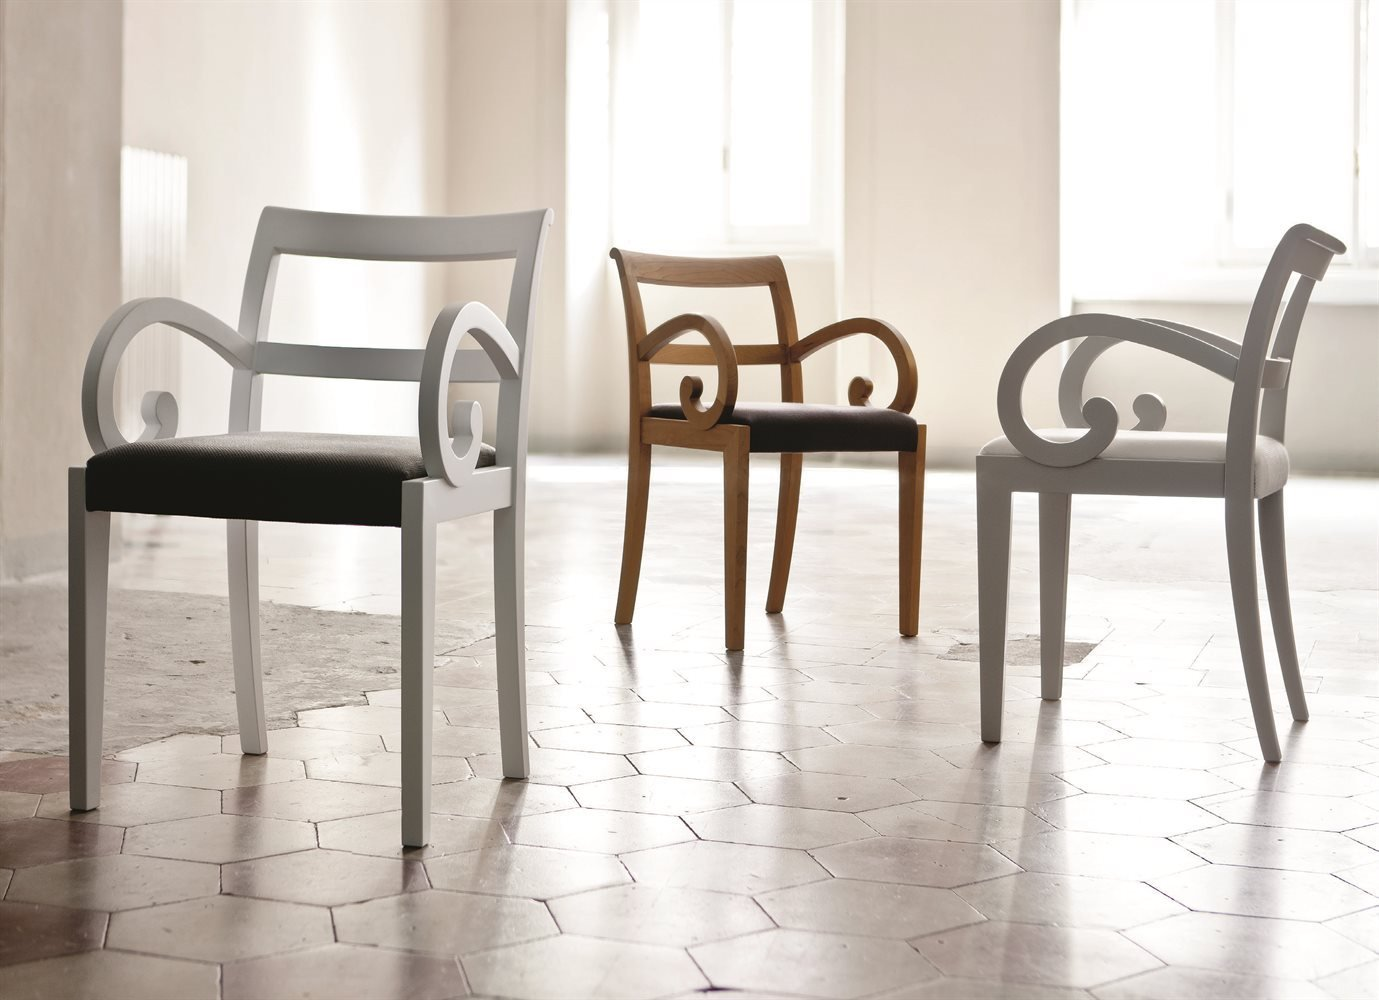 Garbo Chair from Porada, designed by T. Colzani